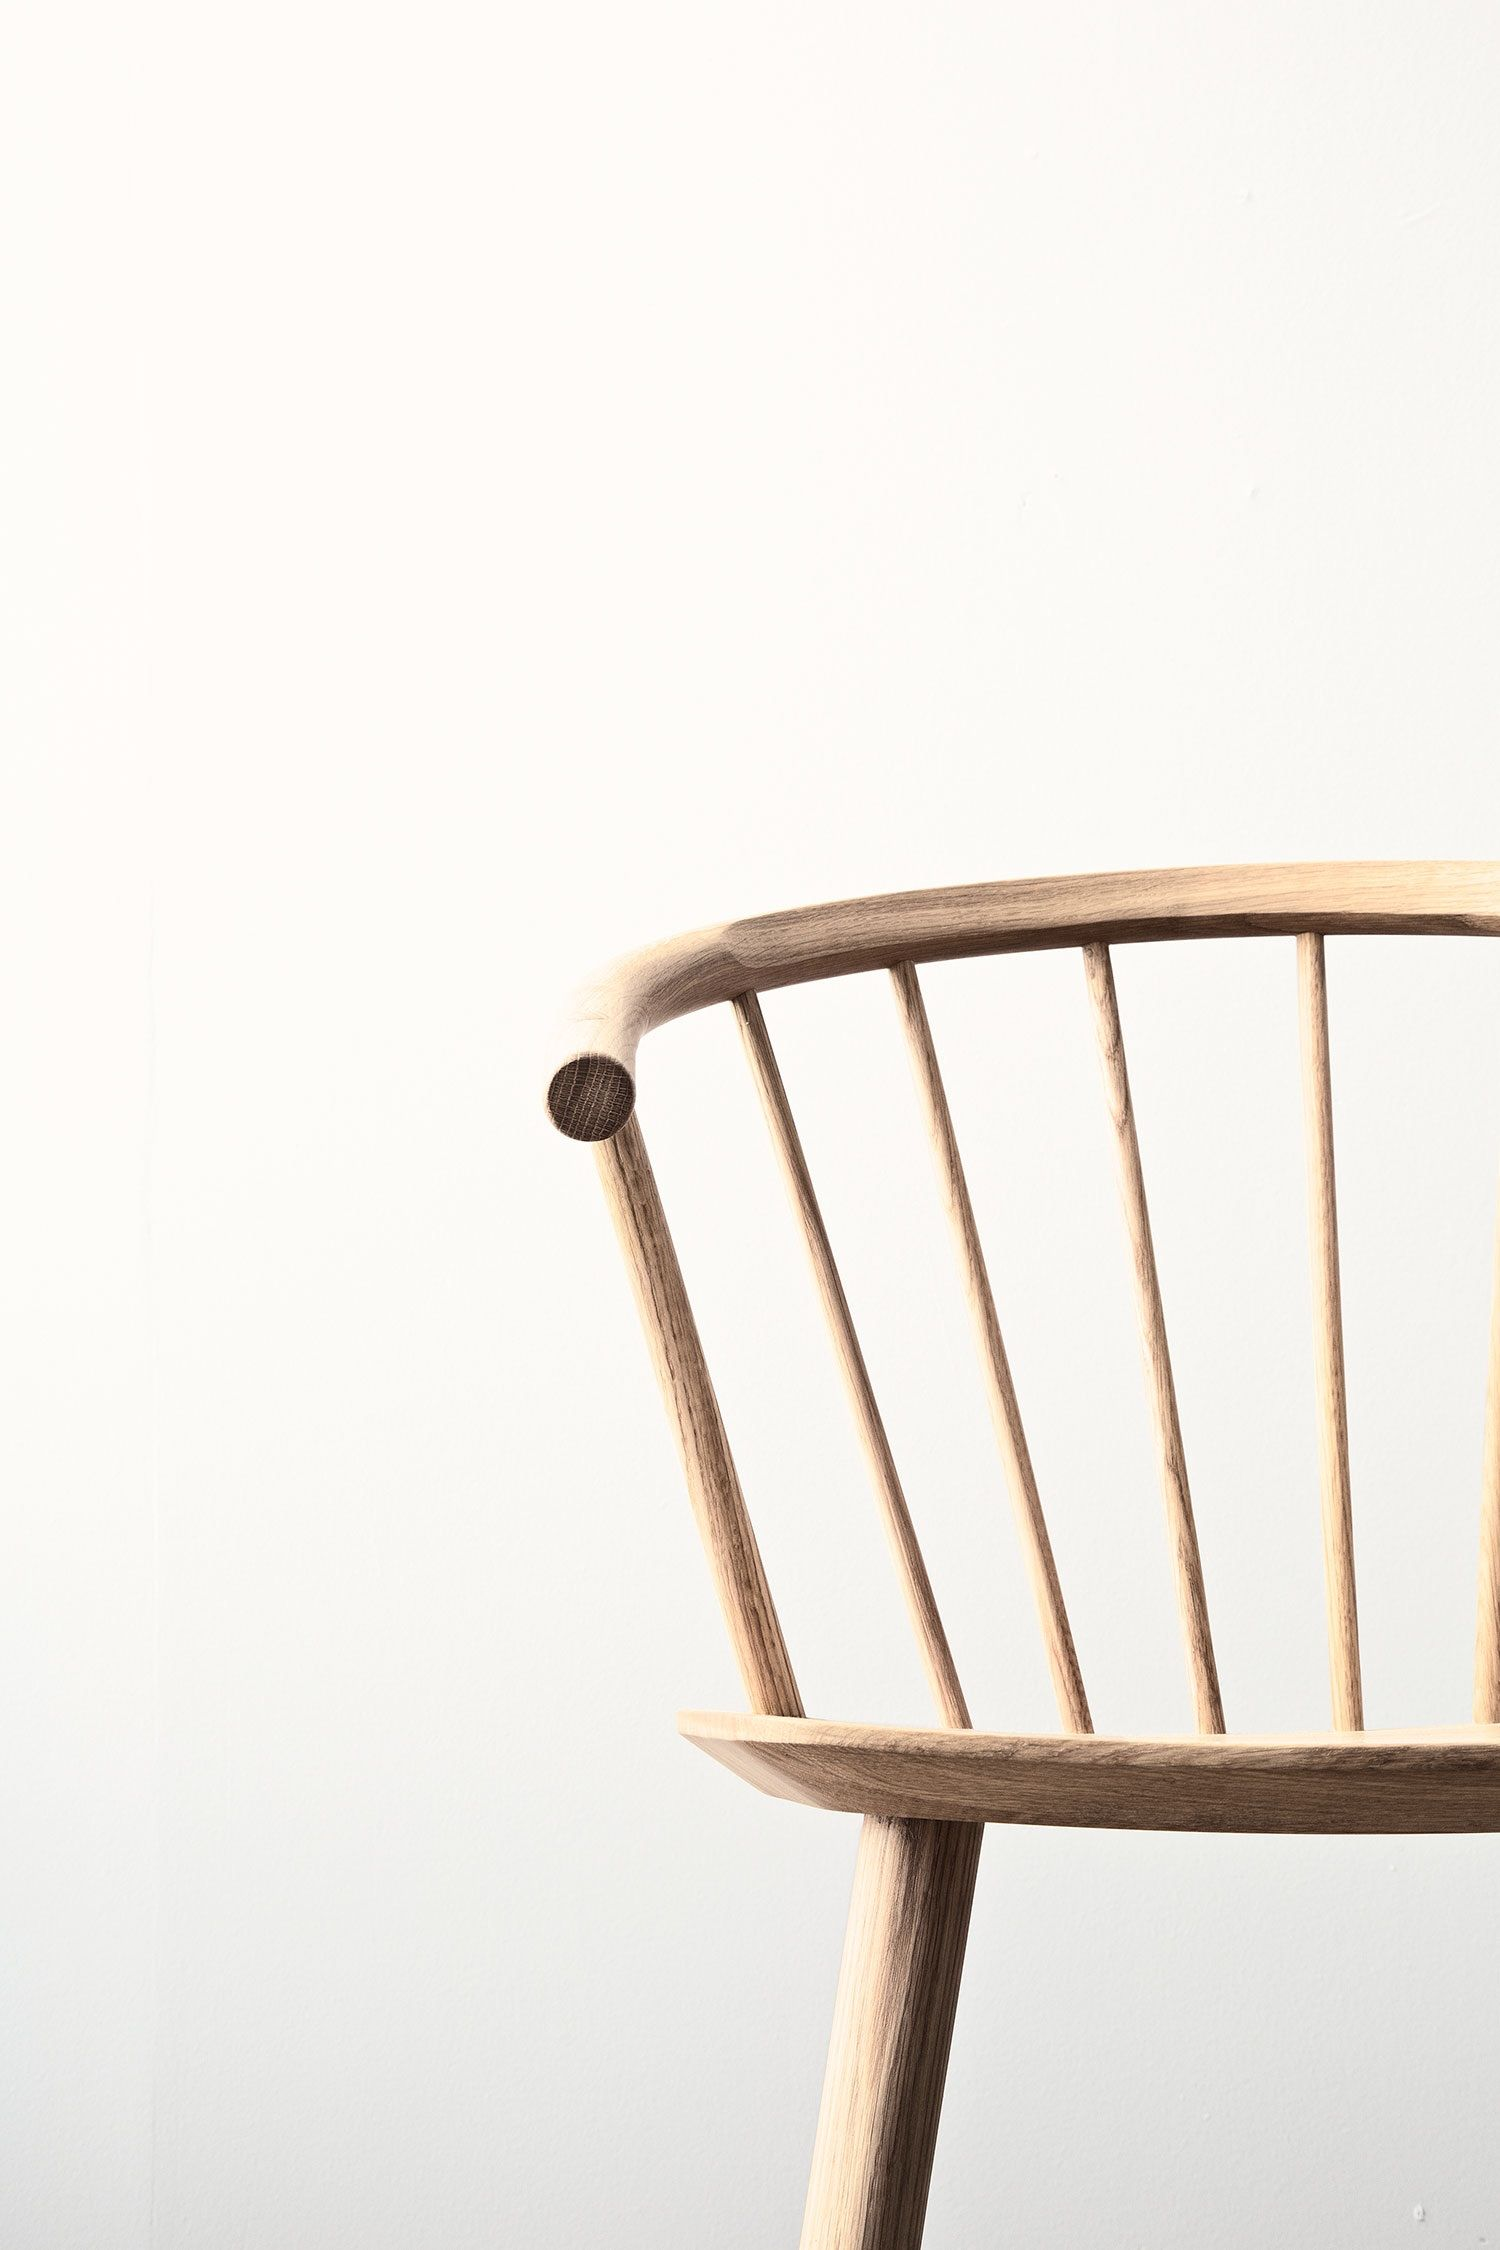 Sleek Chair, Bolia.com